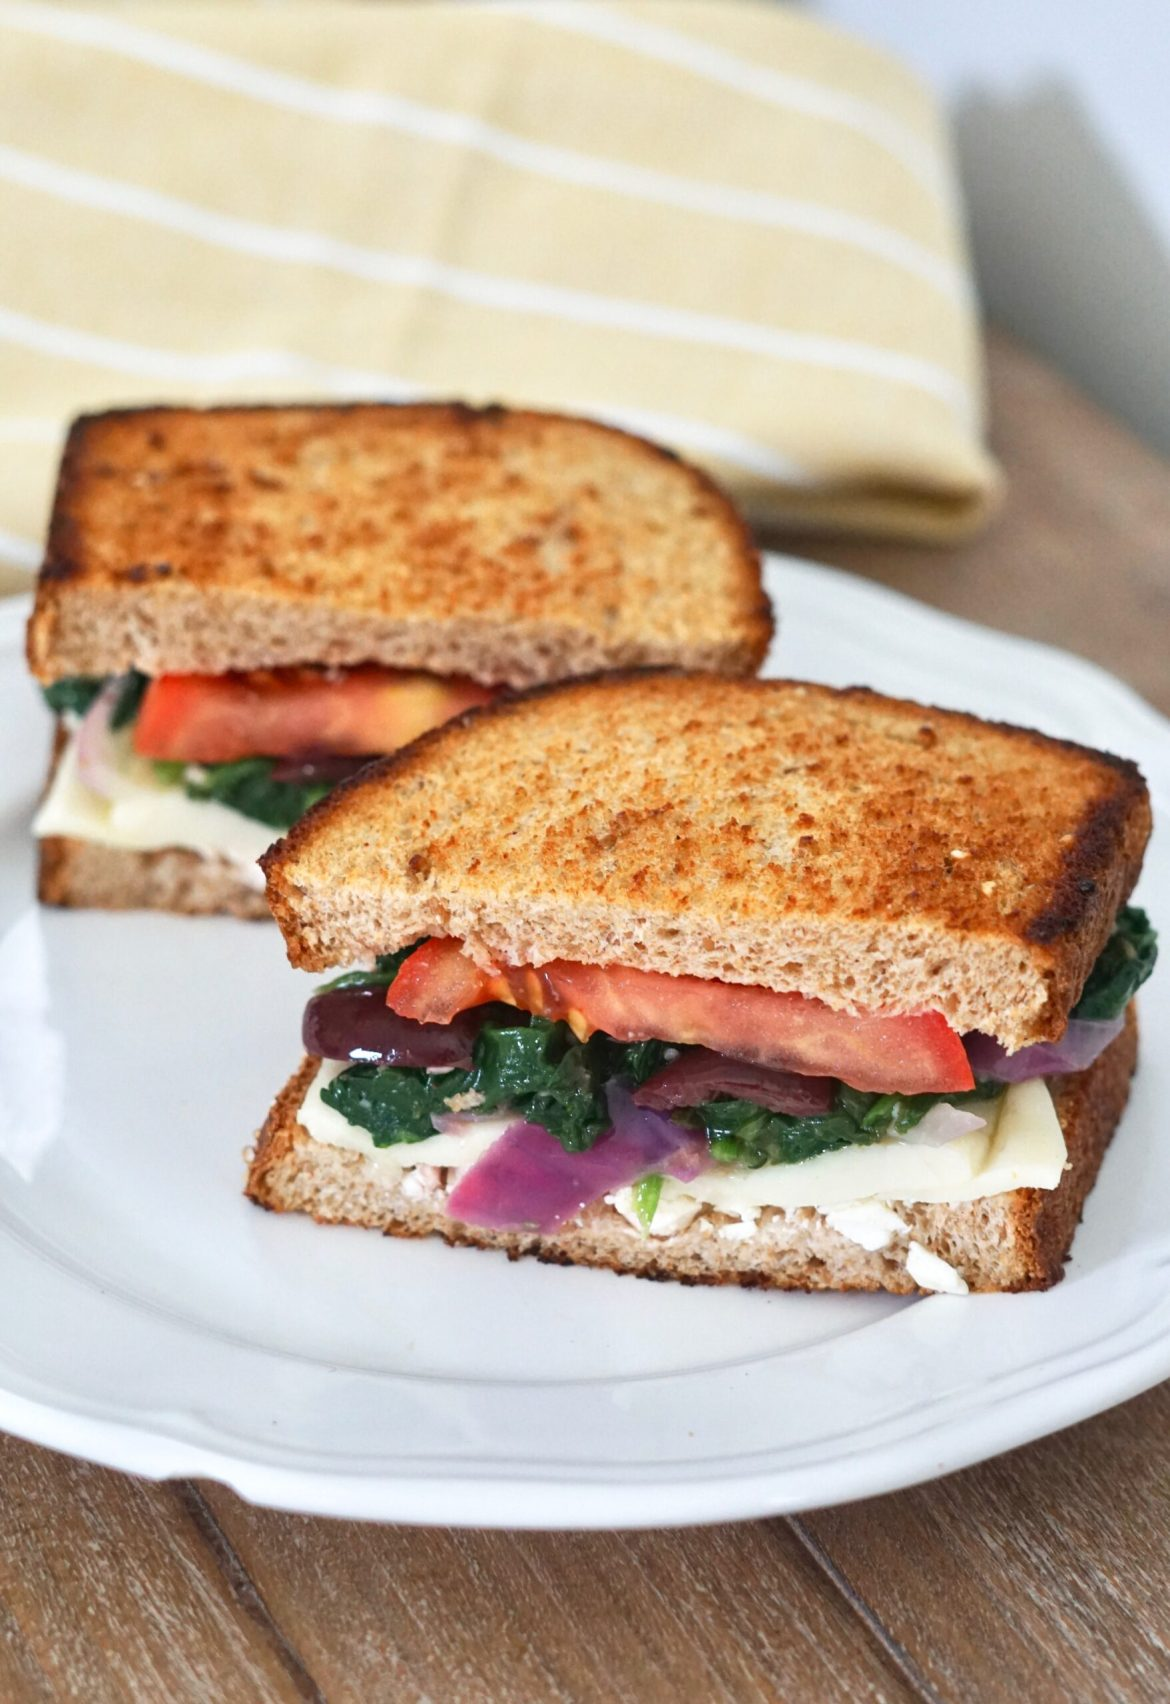 Deidra Mangus, Mediterranean Grilled Cheese, healthy grilled cheese, feta cheese, kalamata olives, roma tomato, whole grain bread, cheese, weight loss journey, healthy military family, healthy lunch recipes, spinach, garlic